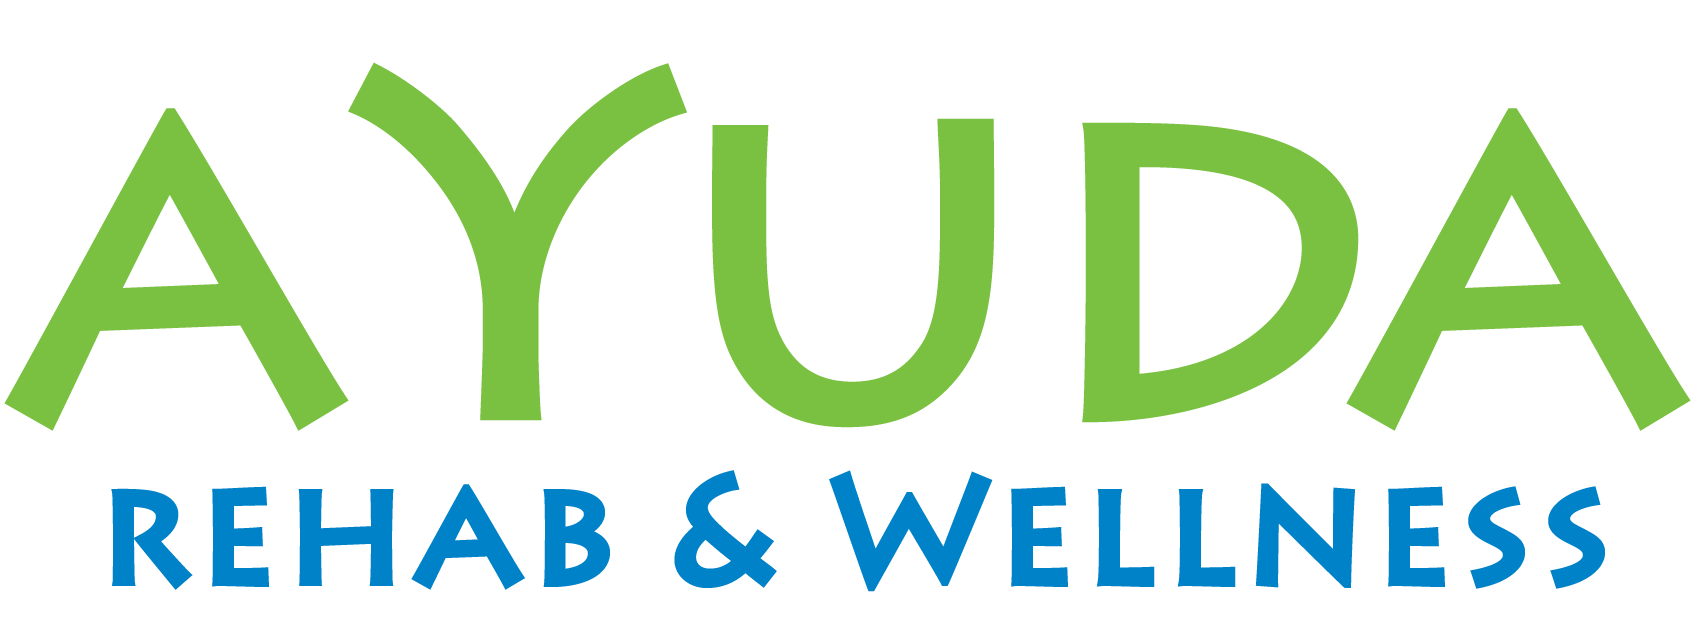 Ayuda Rehab & Wellness, Inc